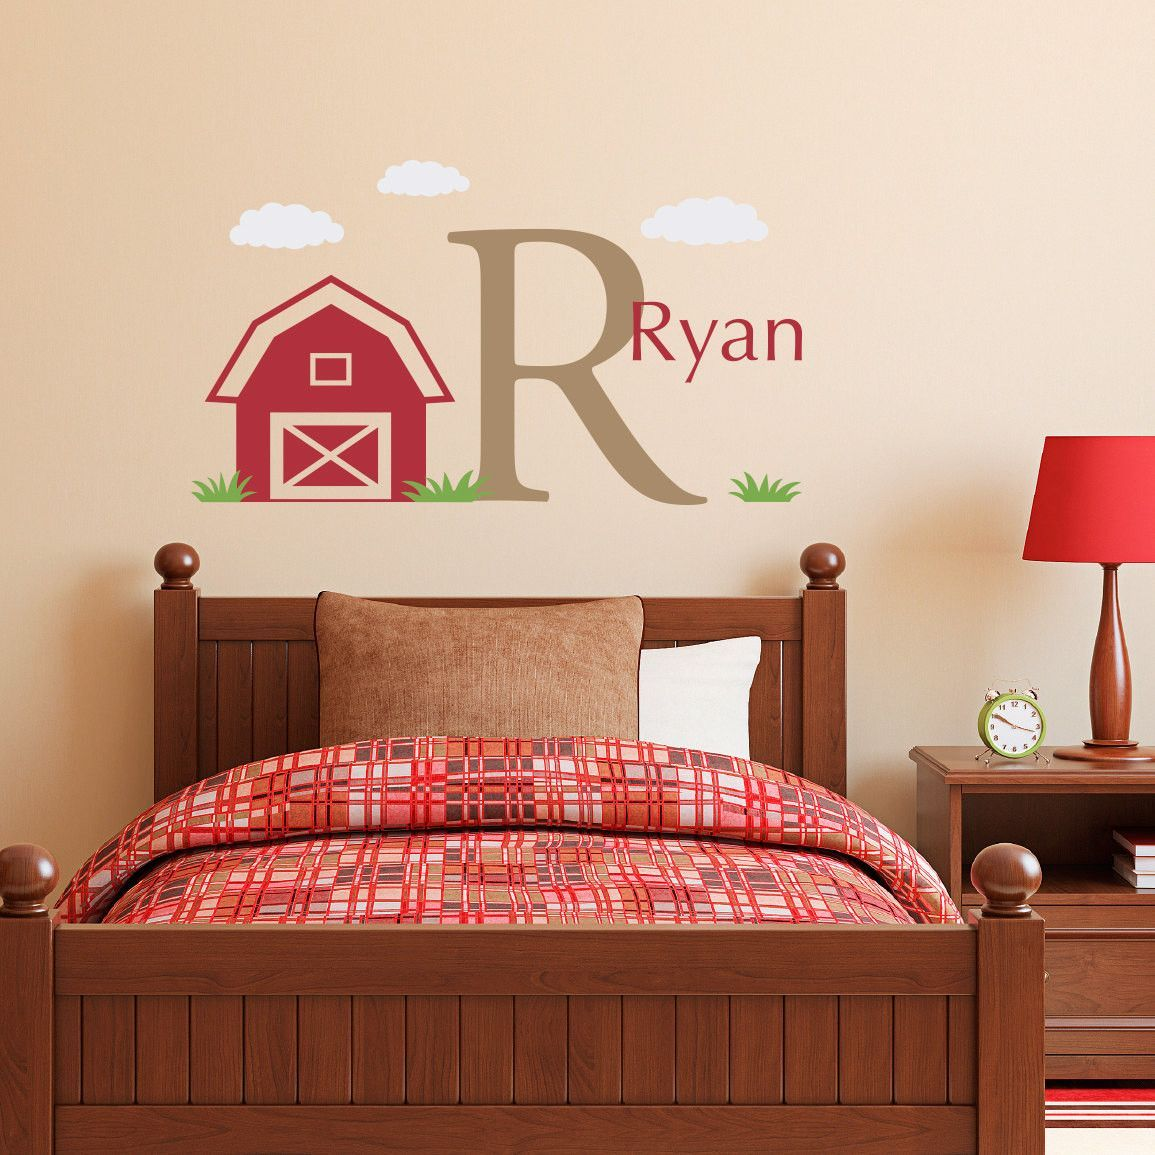 Personalized Barn with Name and Initial, Name Wall Decal - Medium